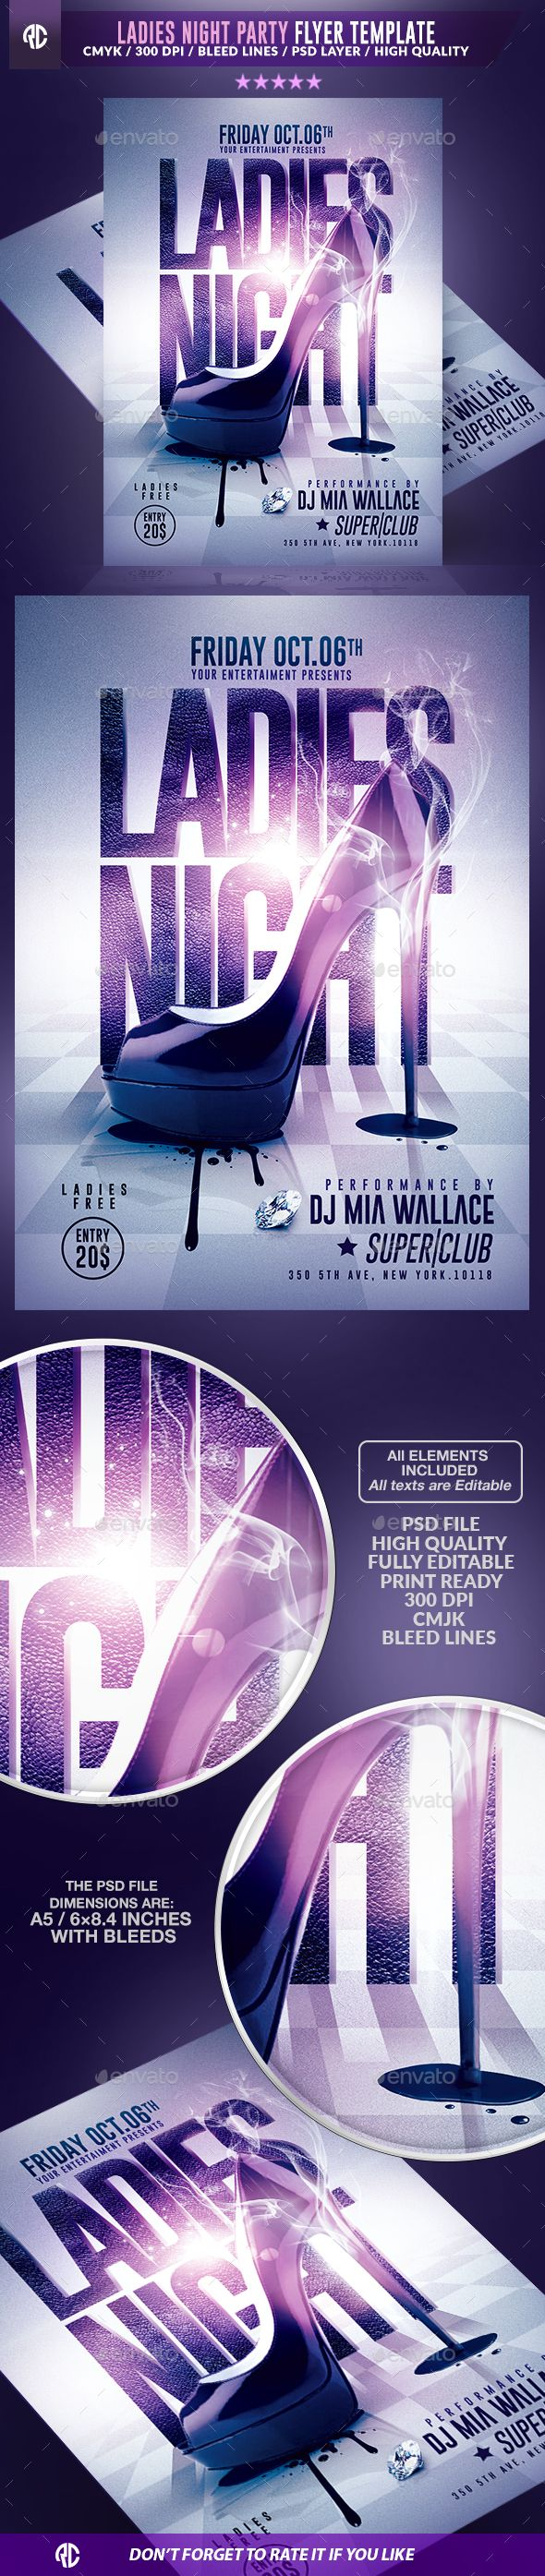 Ladies Night Party Flyer Template PSD #design Download: http://graphicriver.net/item/ladies-night-party-psd-flyer-template/13177305?ref=ksioks